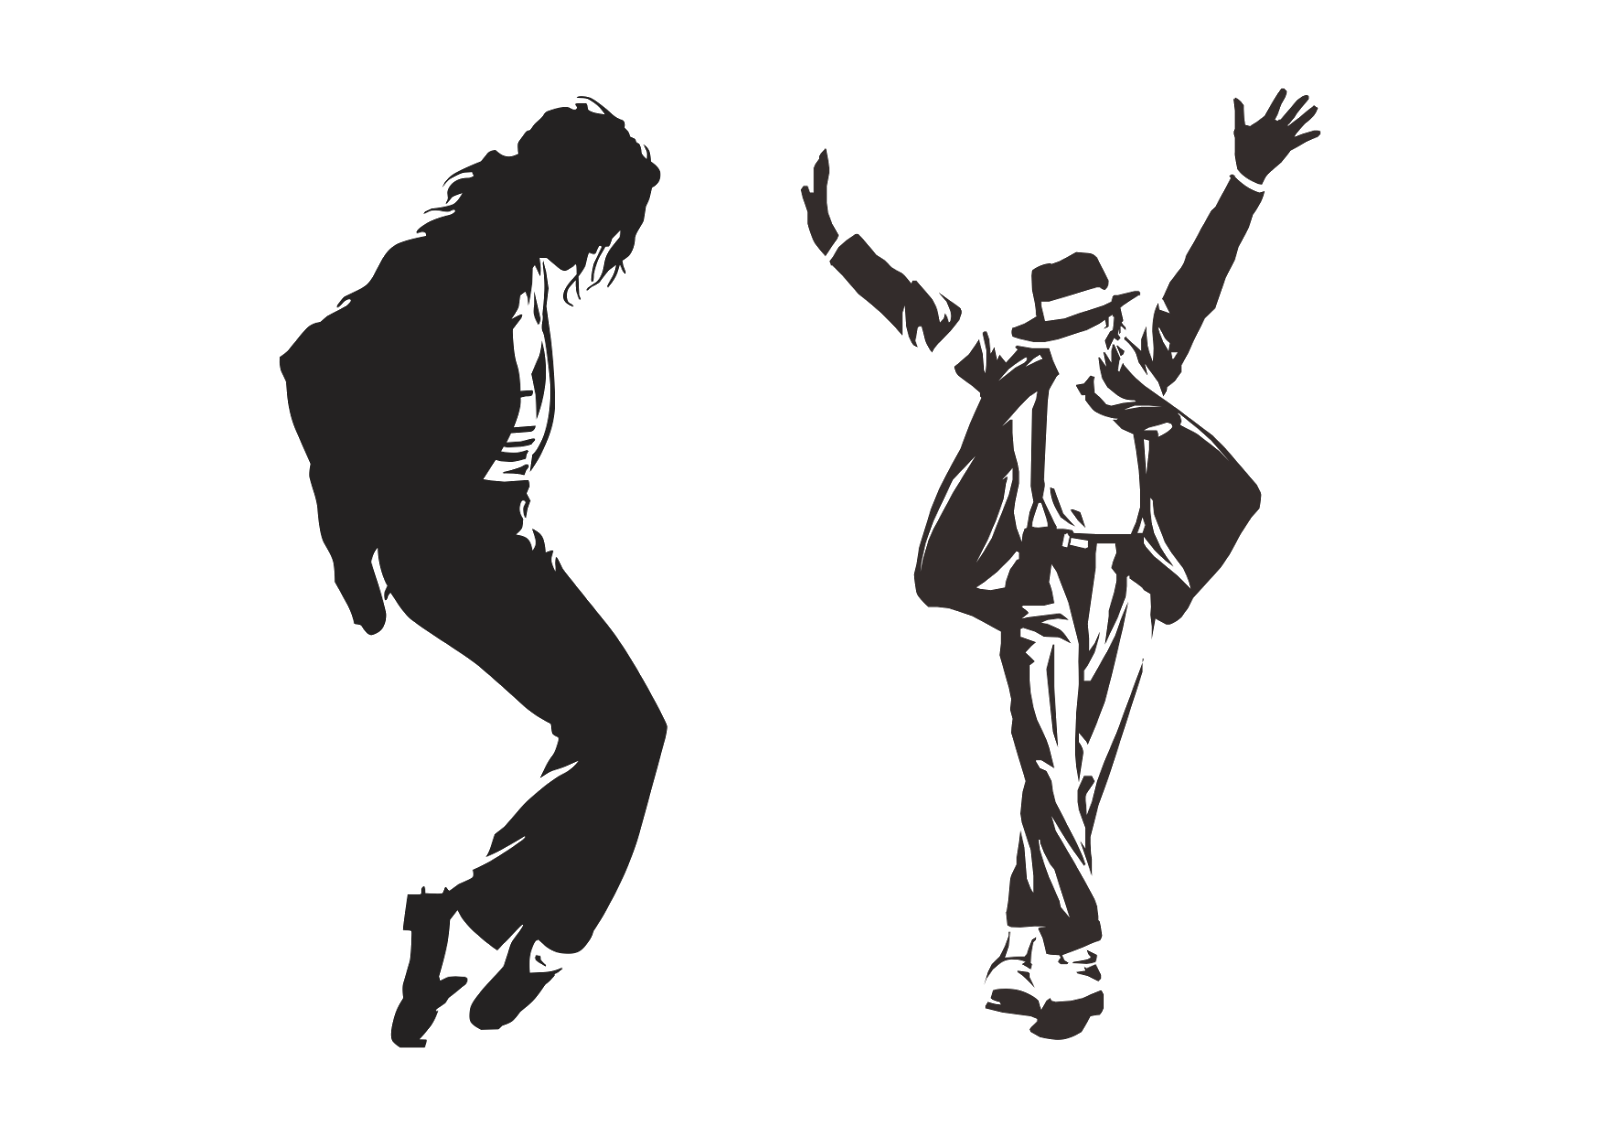 Glove clipart glove michael jackson. Png images free download